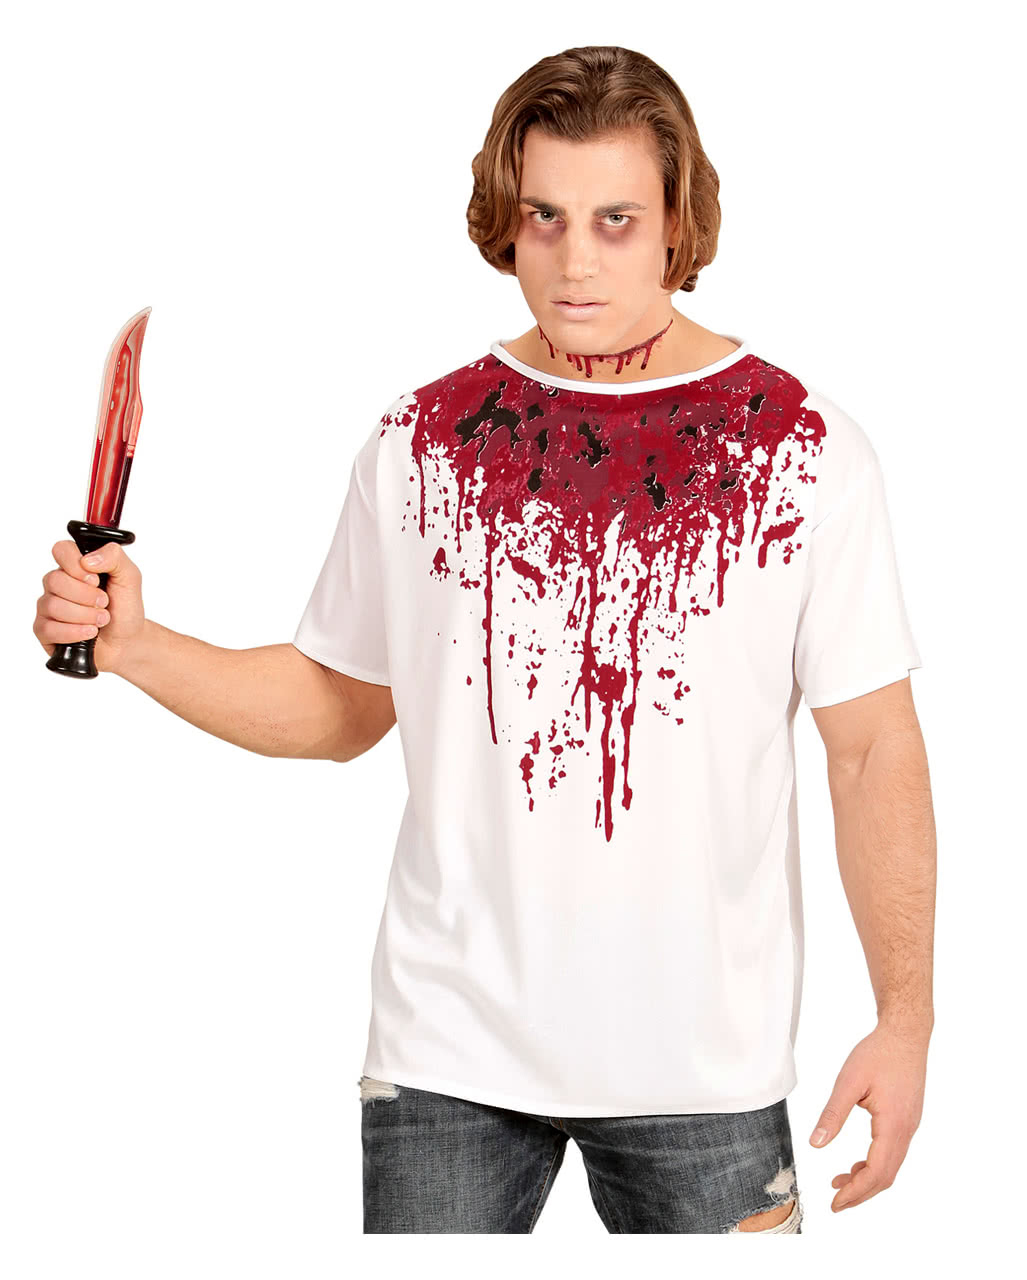 Blood Smeared T-Shirt for Halloween & Horror parties | horror-shop.com